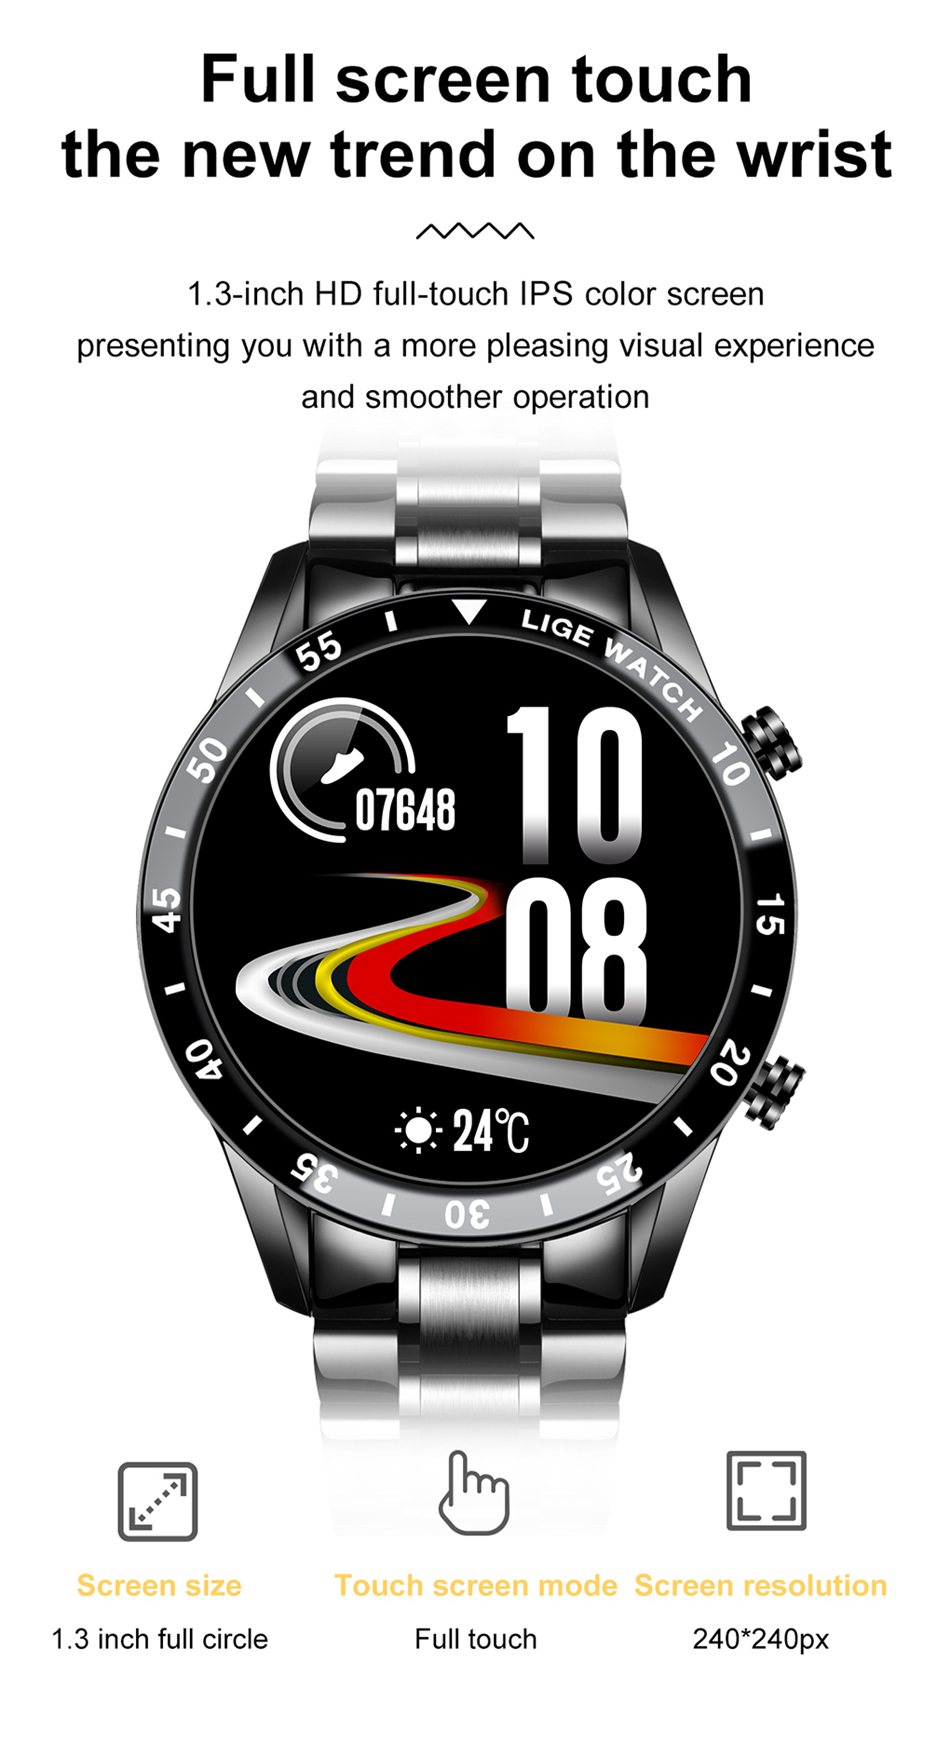 H145b2a26ce794bf4a94e626b2aeb968bU LIGE New Men Smart watch Heart rate Blood pressure IP68 waterproof sports Fitness watch Luxury Smart watch male for iOS Android